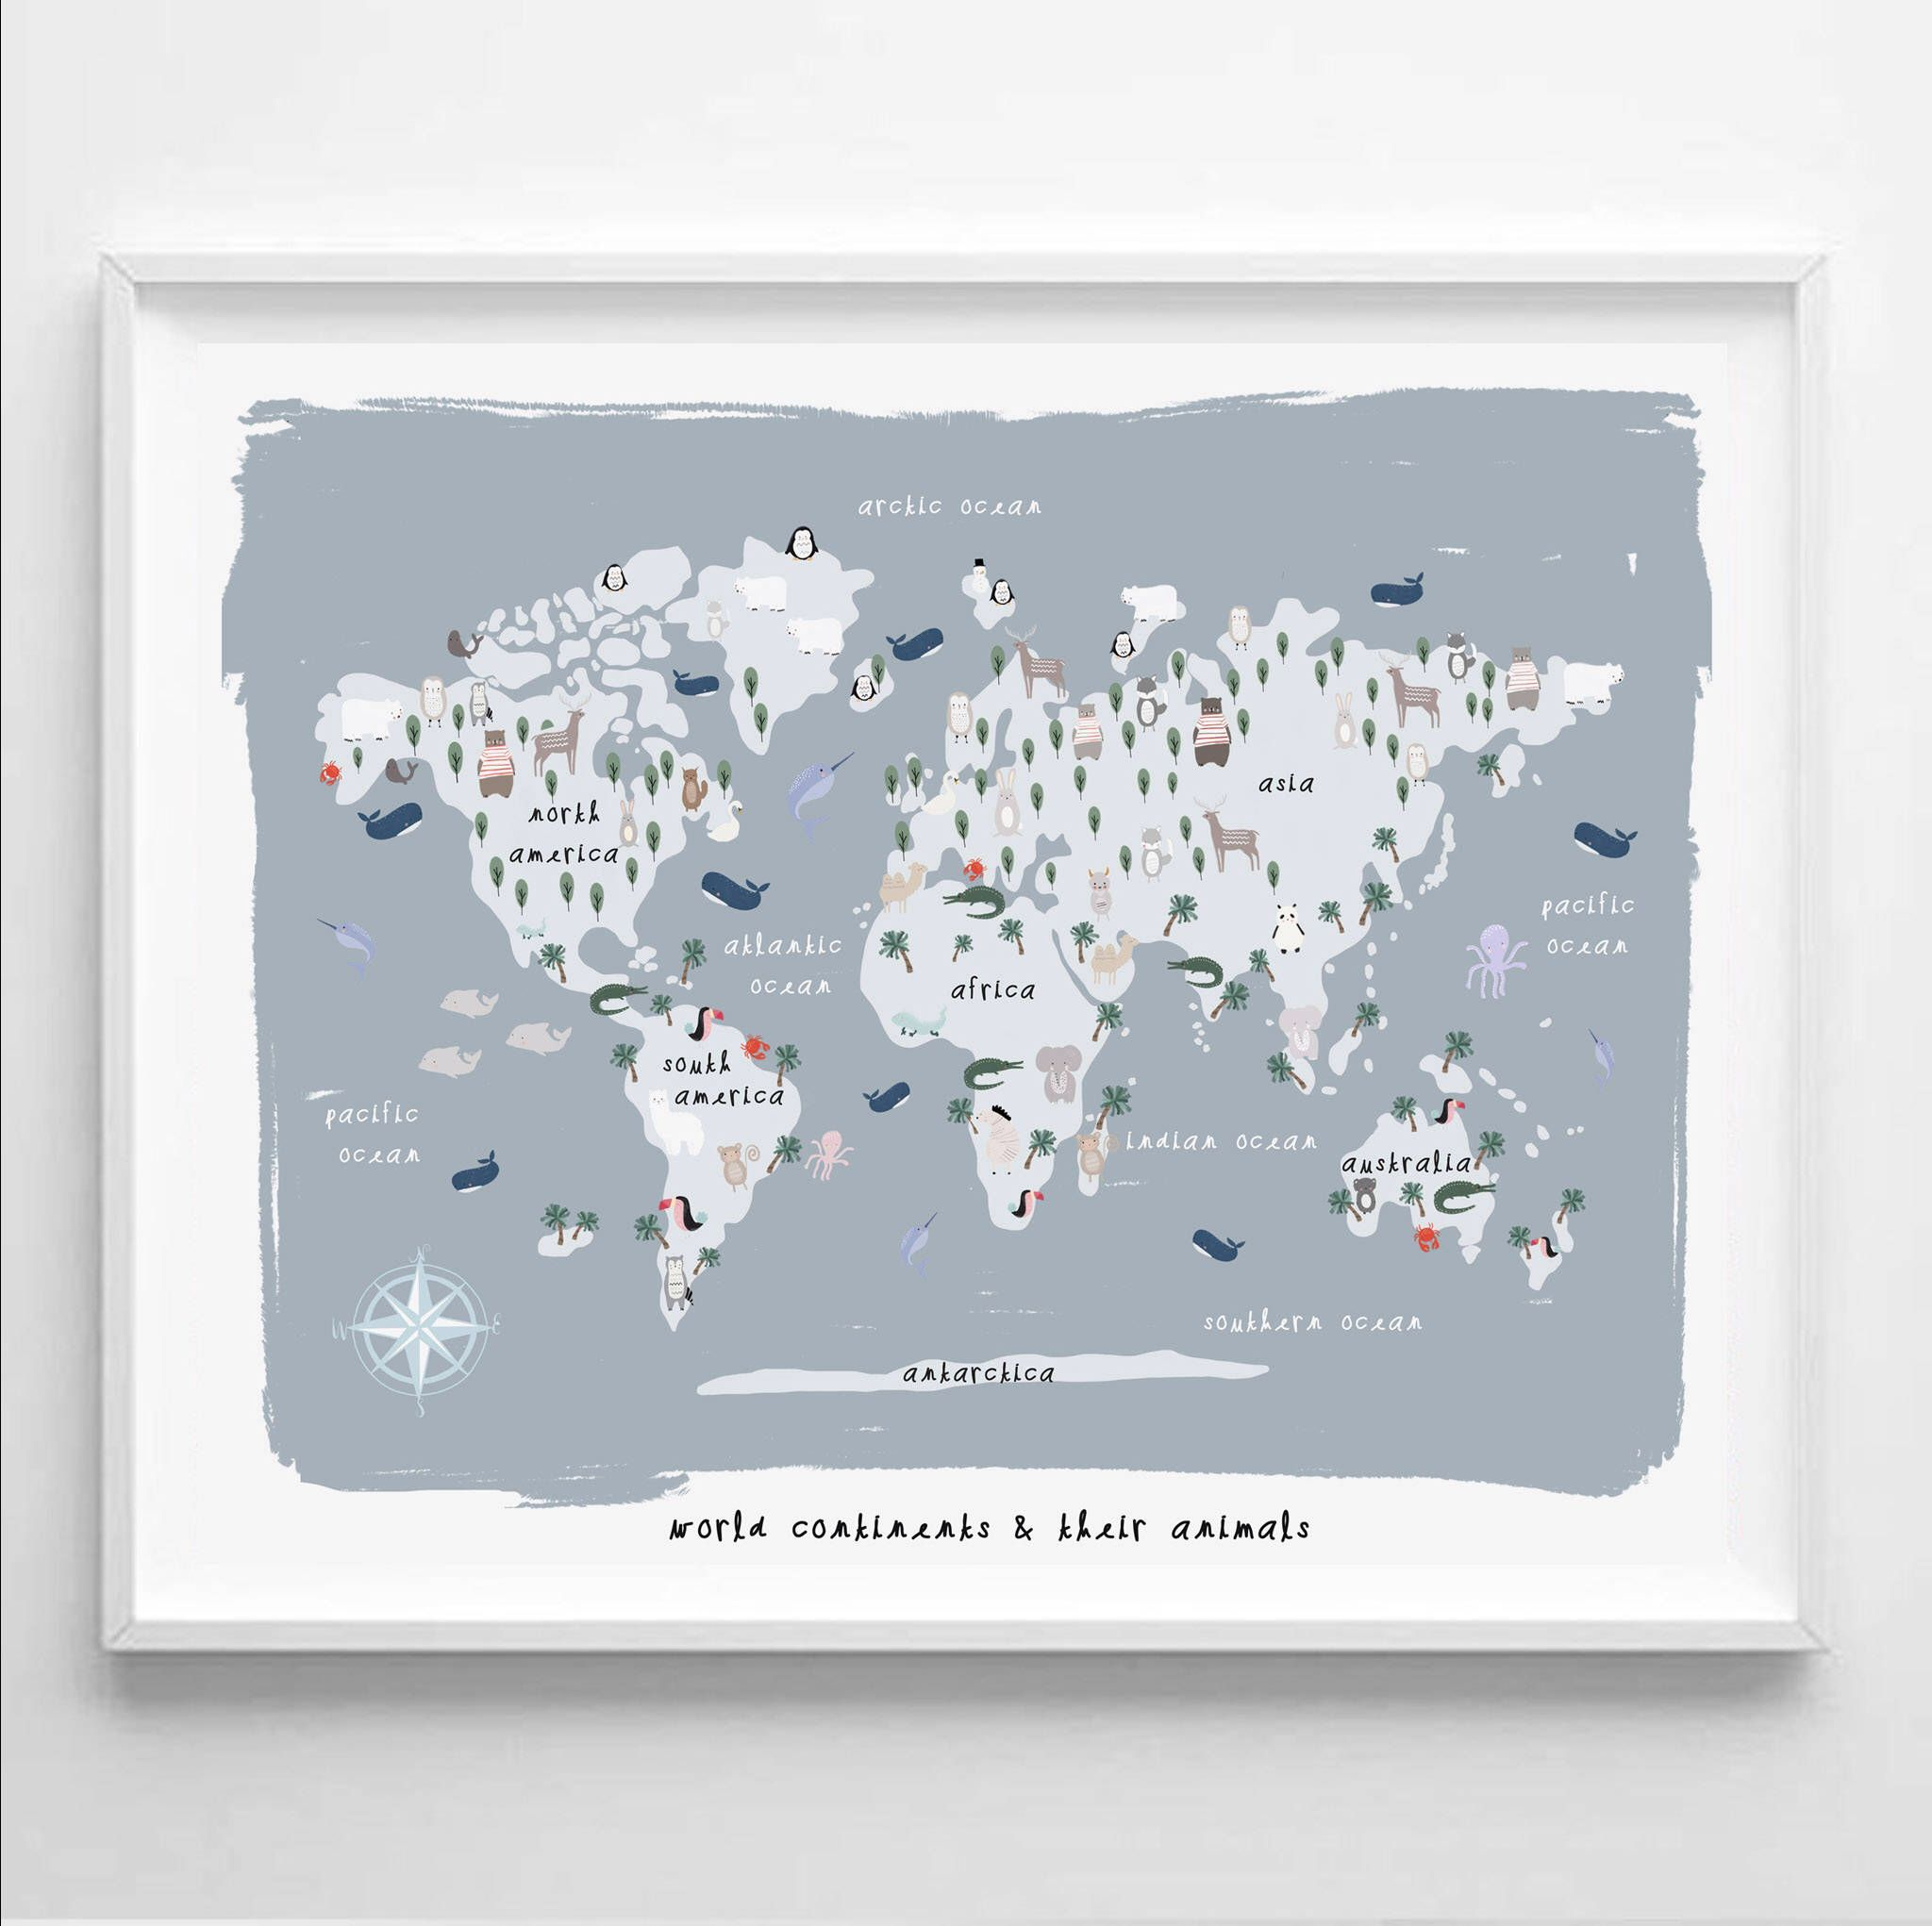 Kids world map print printable art continents of the world map kids world continent map their animals nursery decor nursery wall art https gumiabroncs Image collections